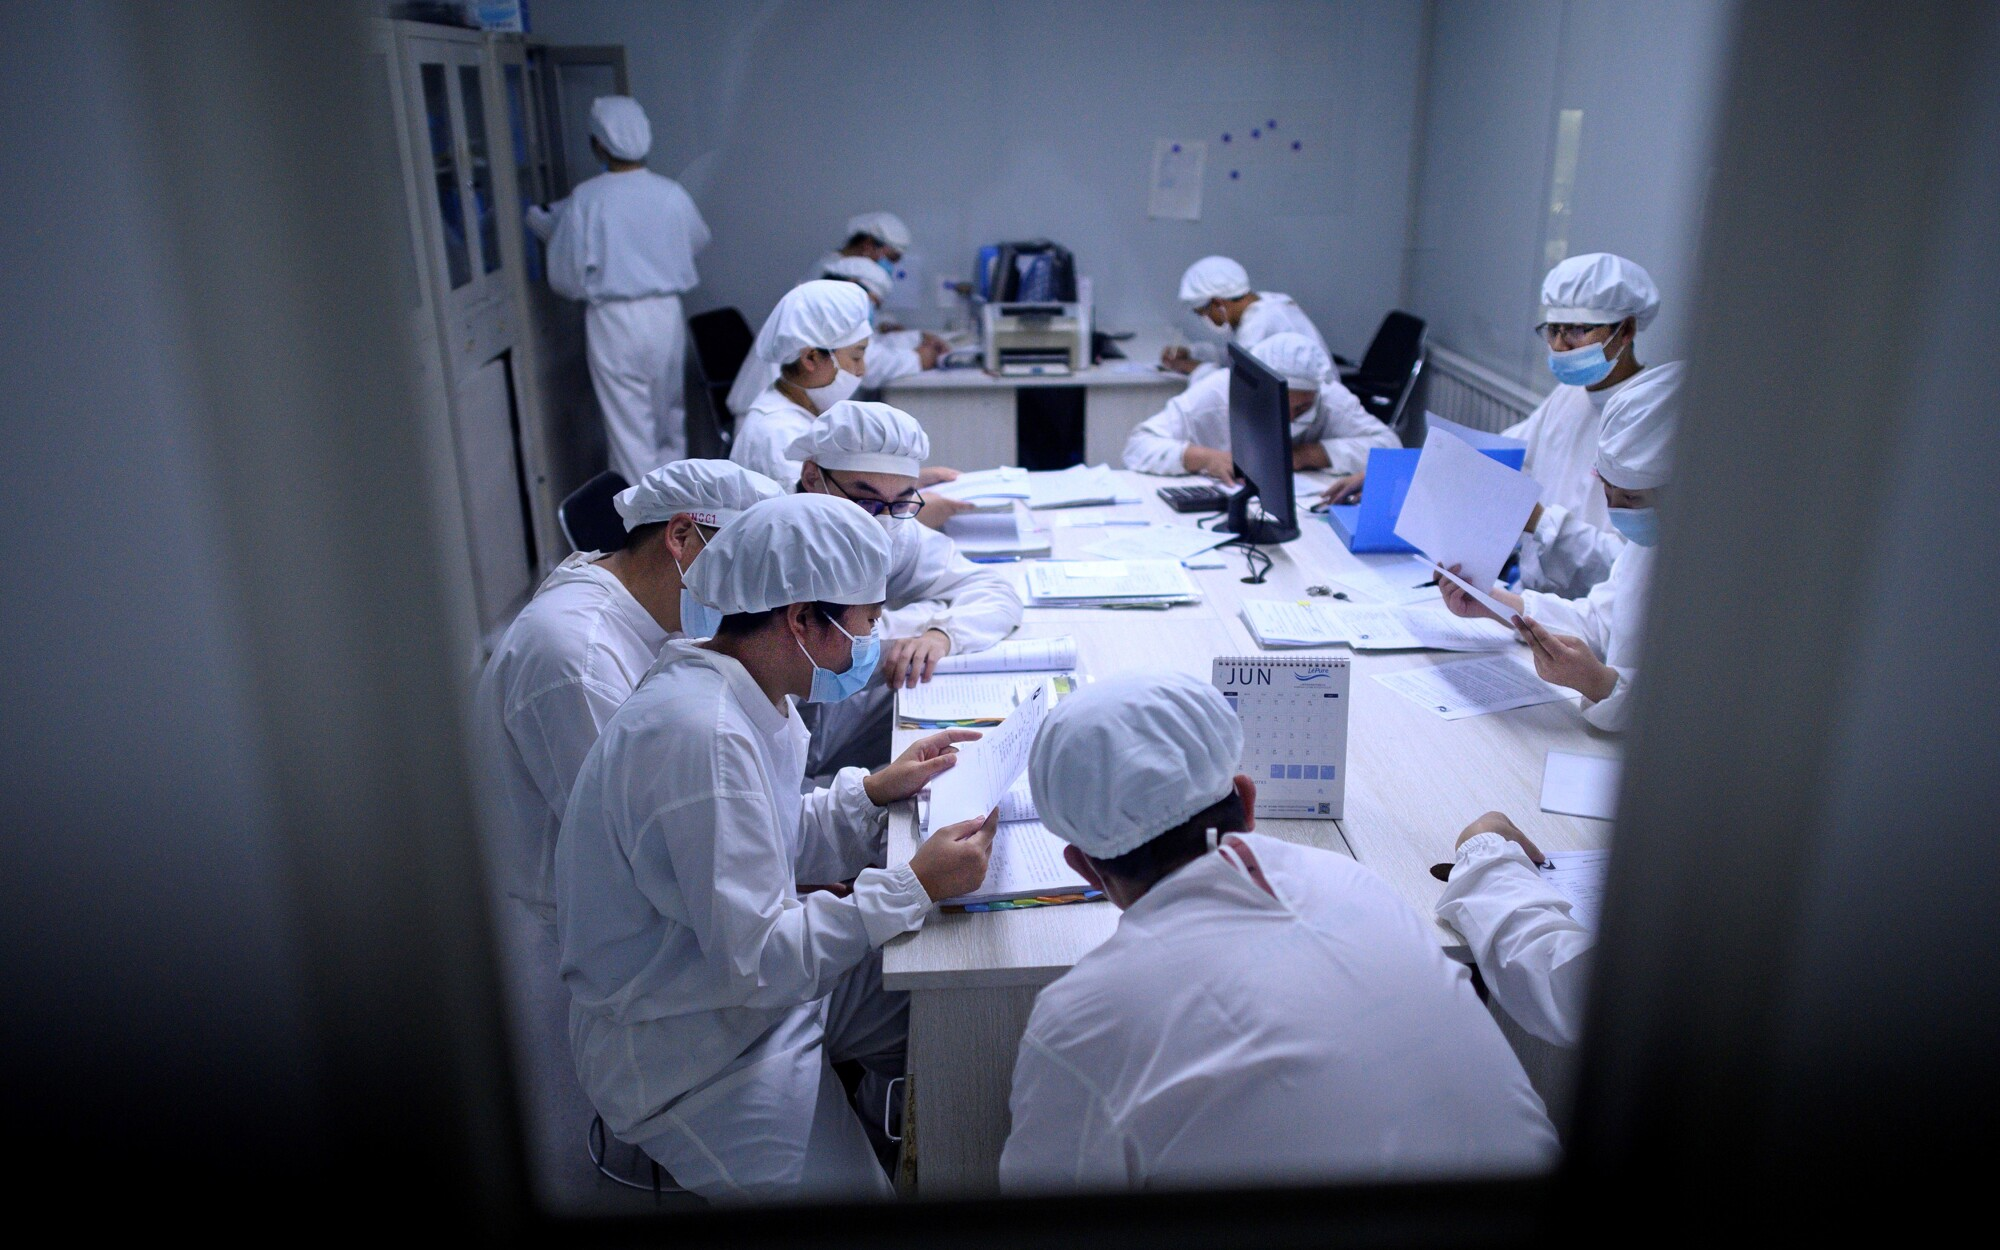 Researchers work in a lab at Yisheng Biopharma, one of a number of companies in China trying to develop a COVID-19 vaccine.